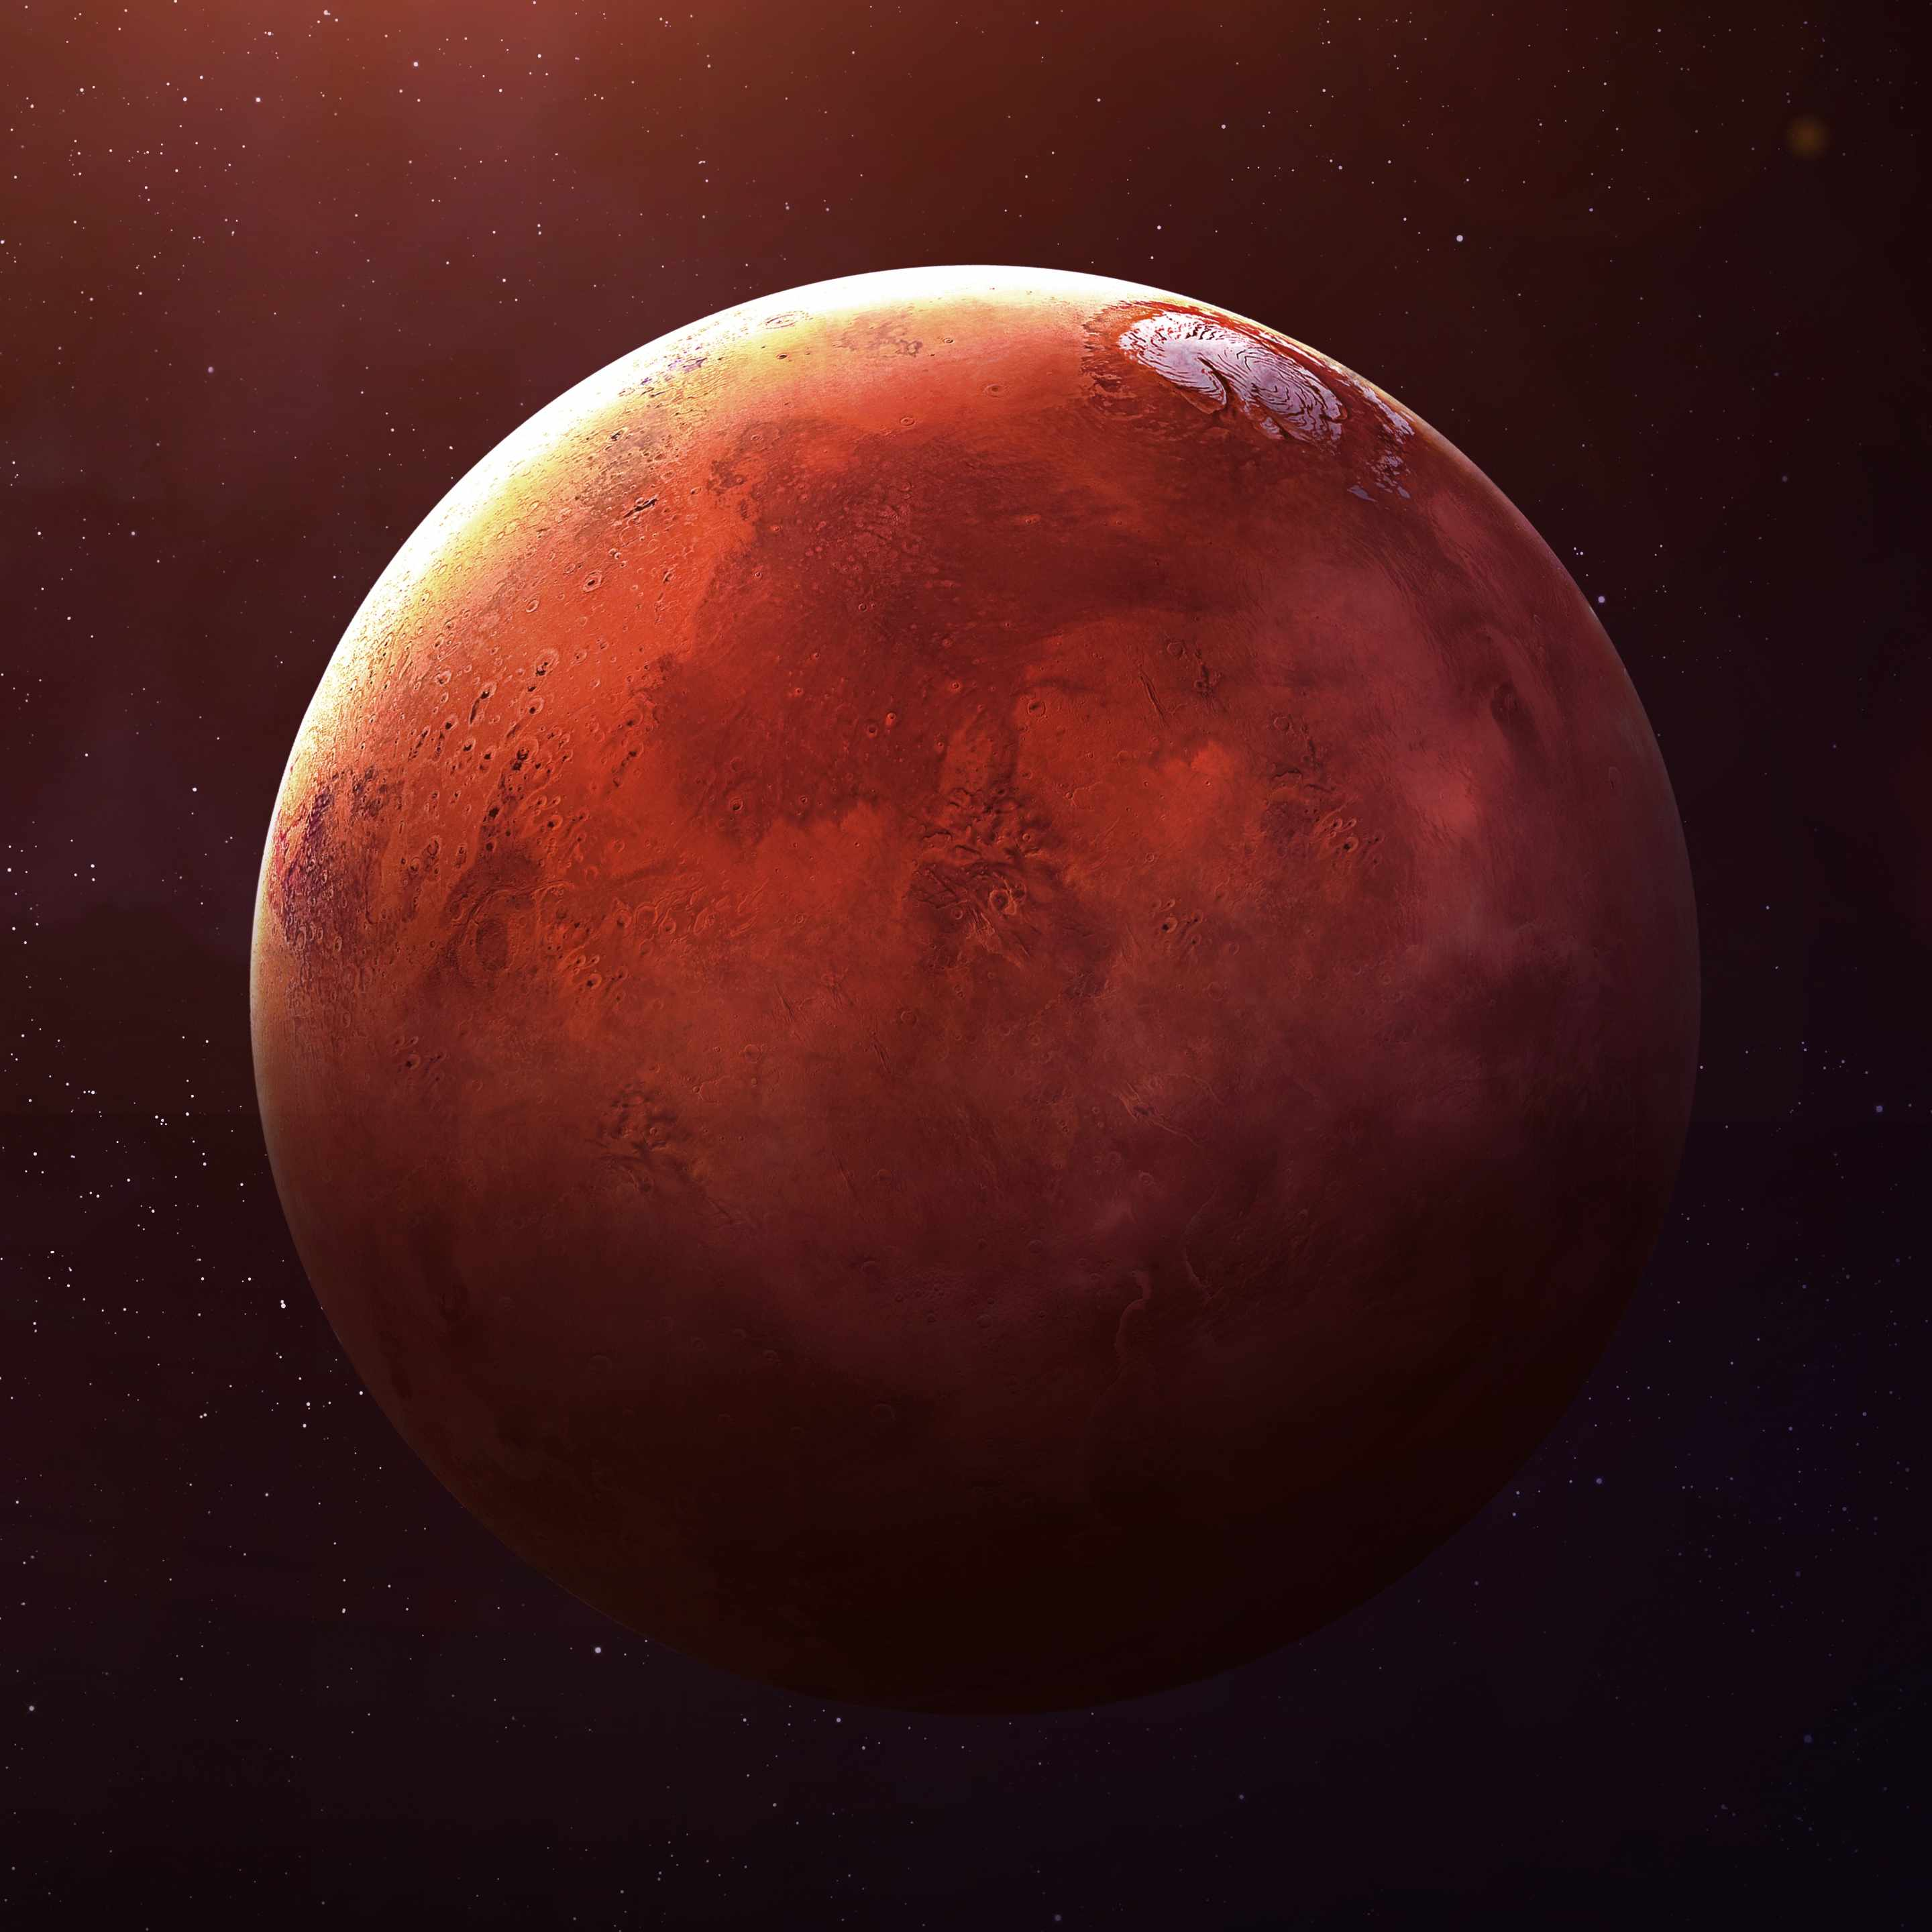 picture of planet Mars, red planet